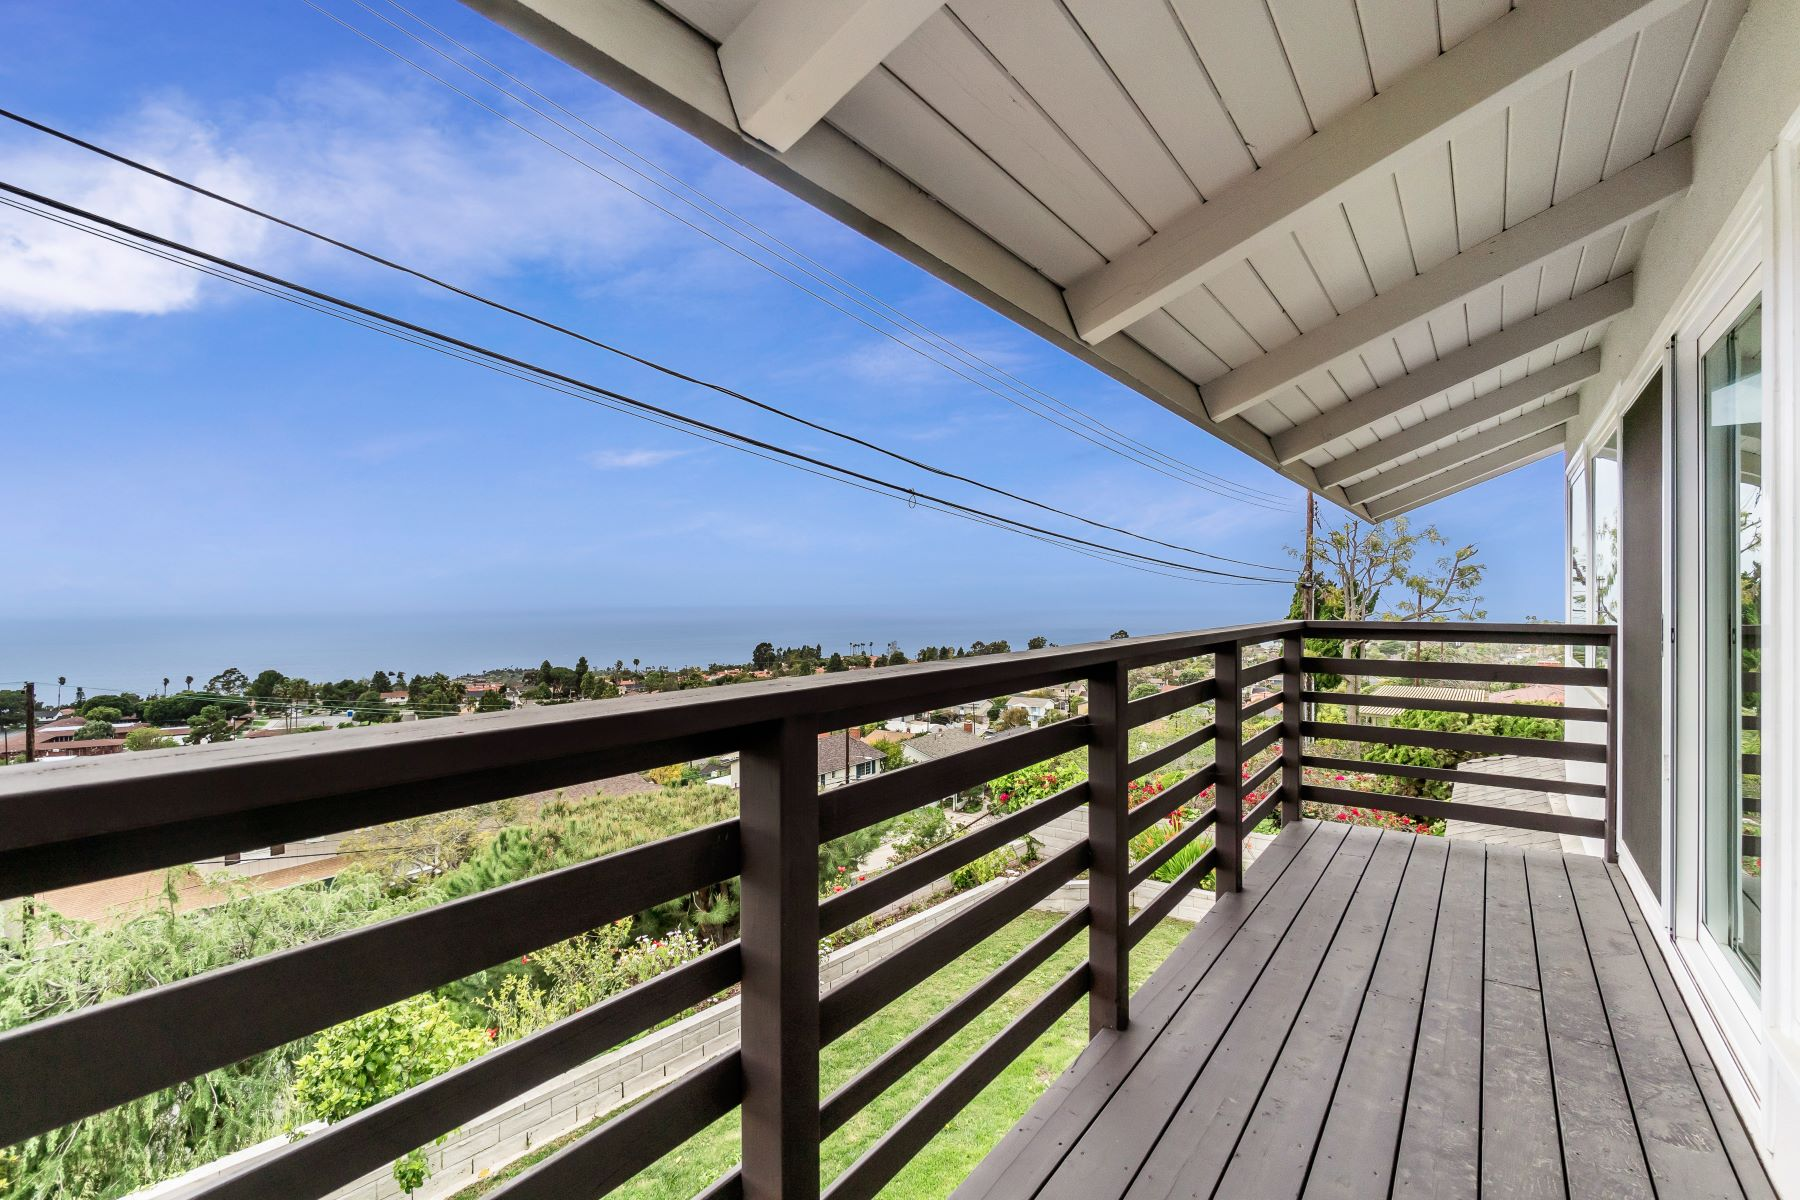 Single Family Homes for Active at 28855 Blythewood Drive, Rancho Palos Verdes, CA 90275 28855 Blythewood Drive Rancho Palos Verdes, California 90275 United States